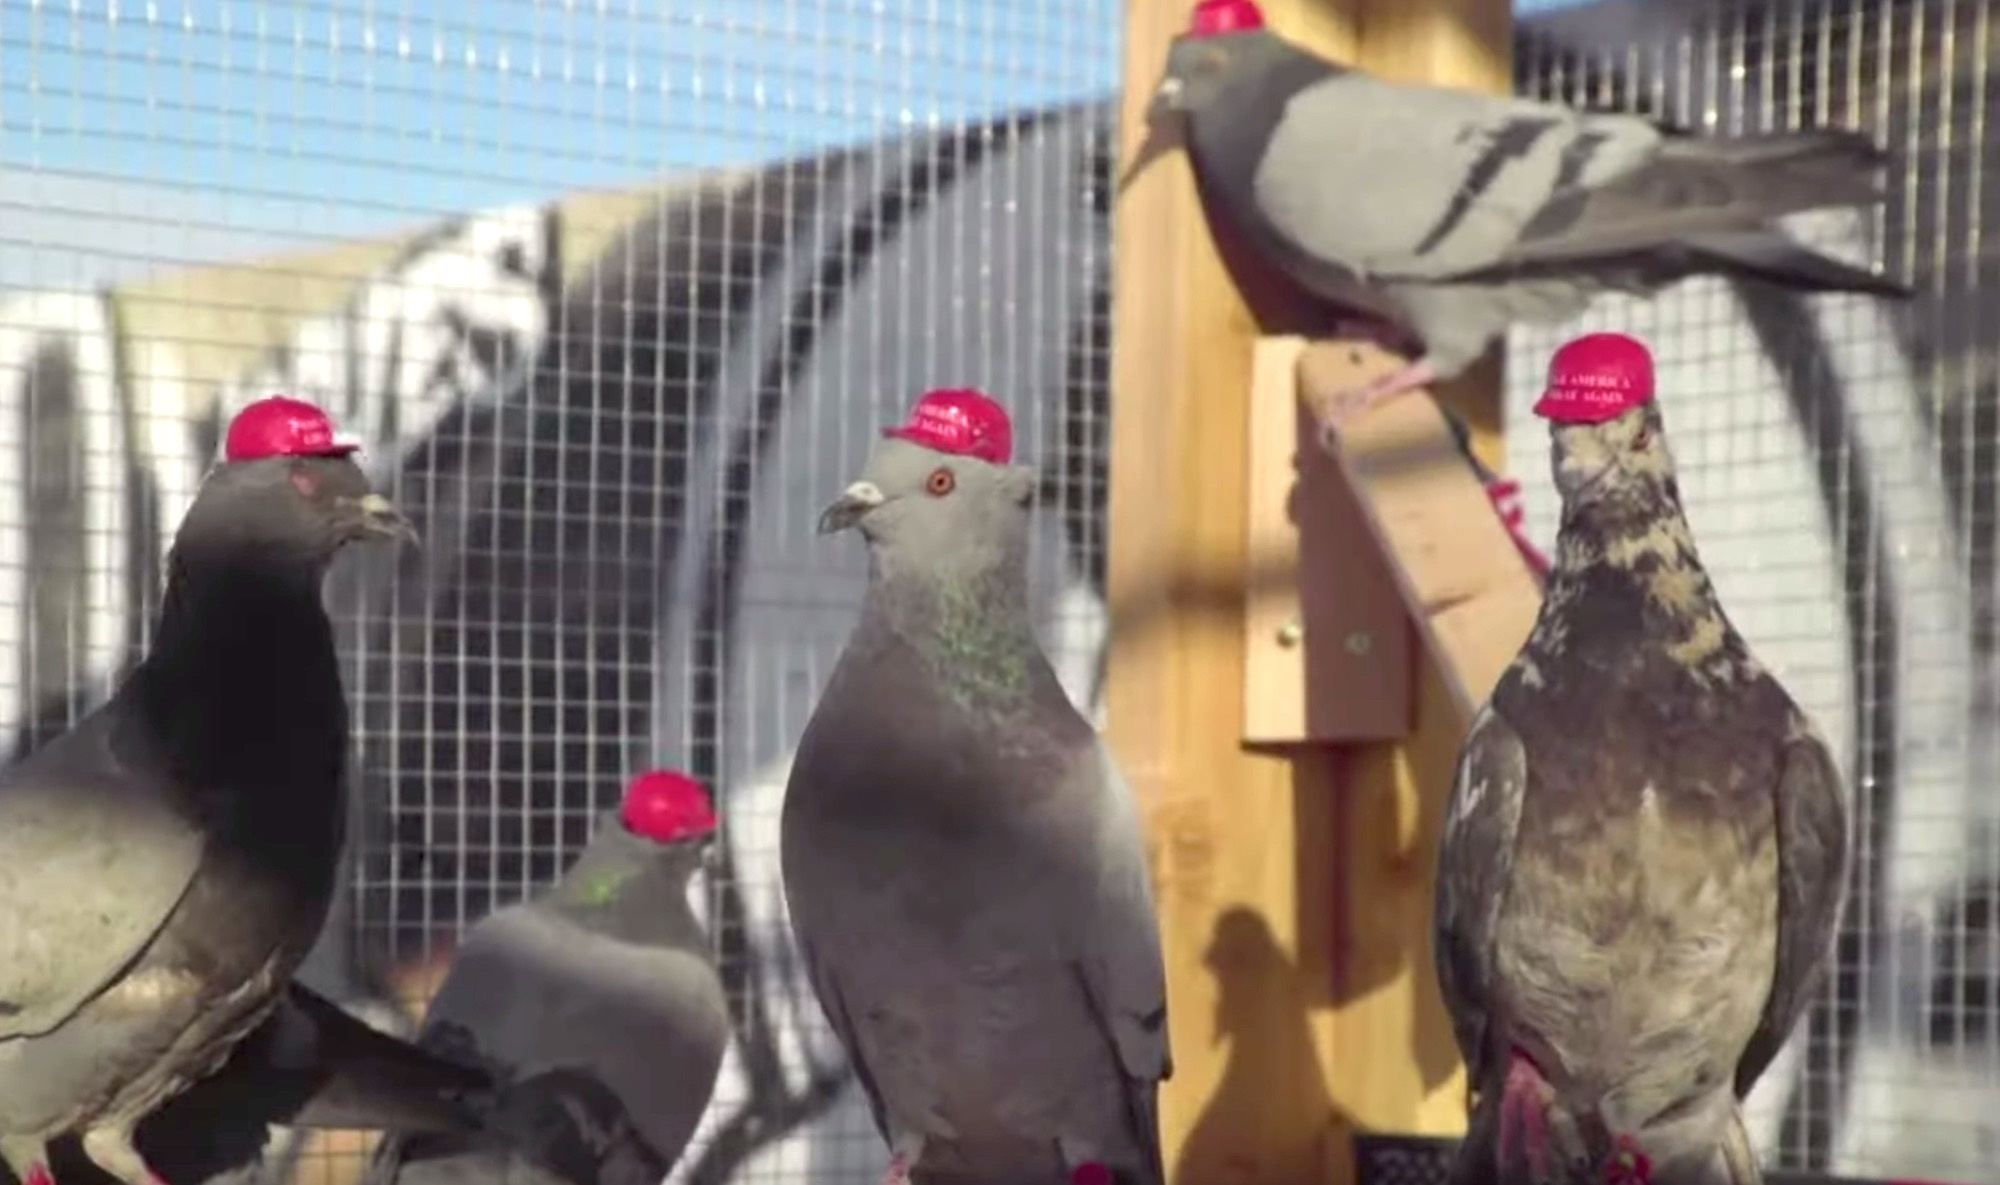 'Radical' group releases pigeons with MAGA hats glued on their heads for President Trump's visit to Nevada